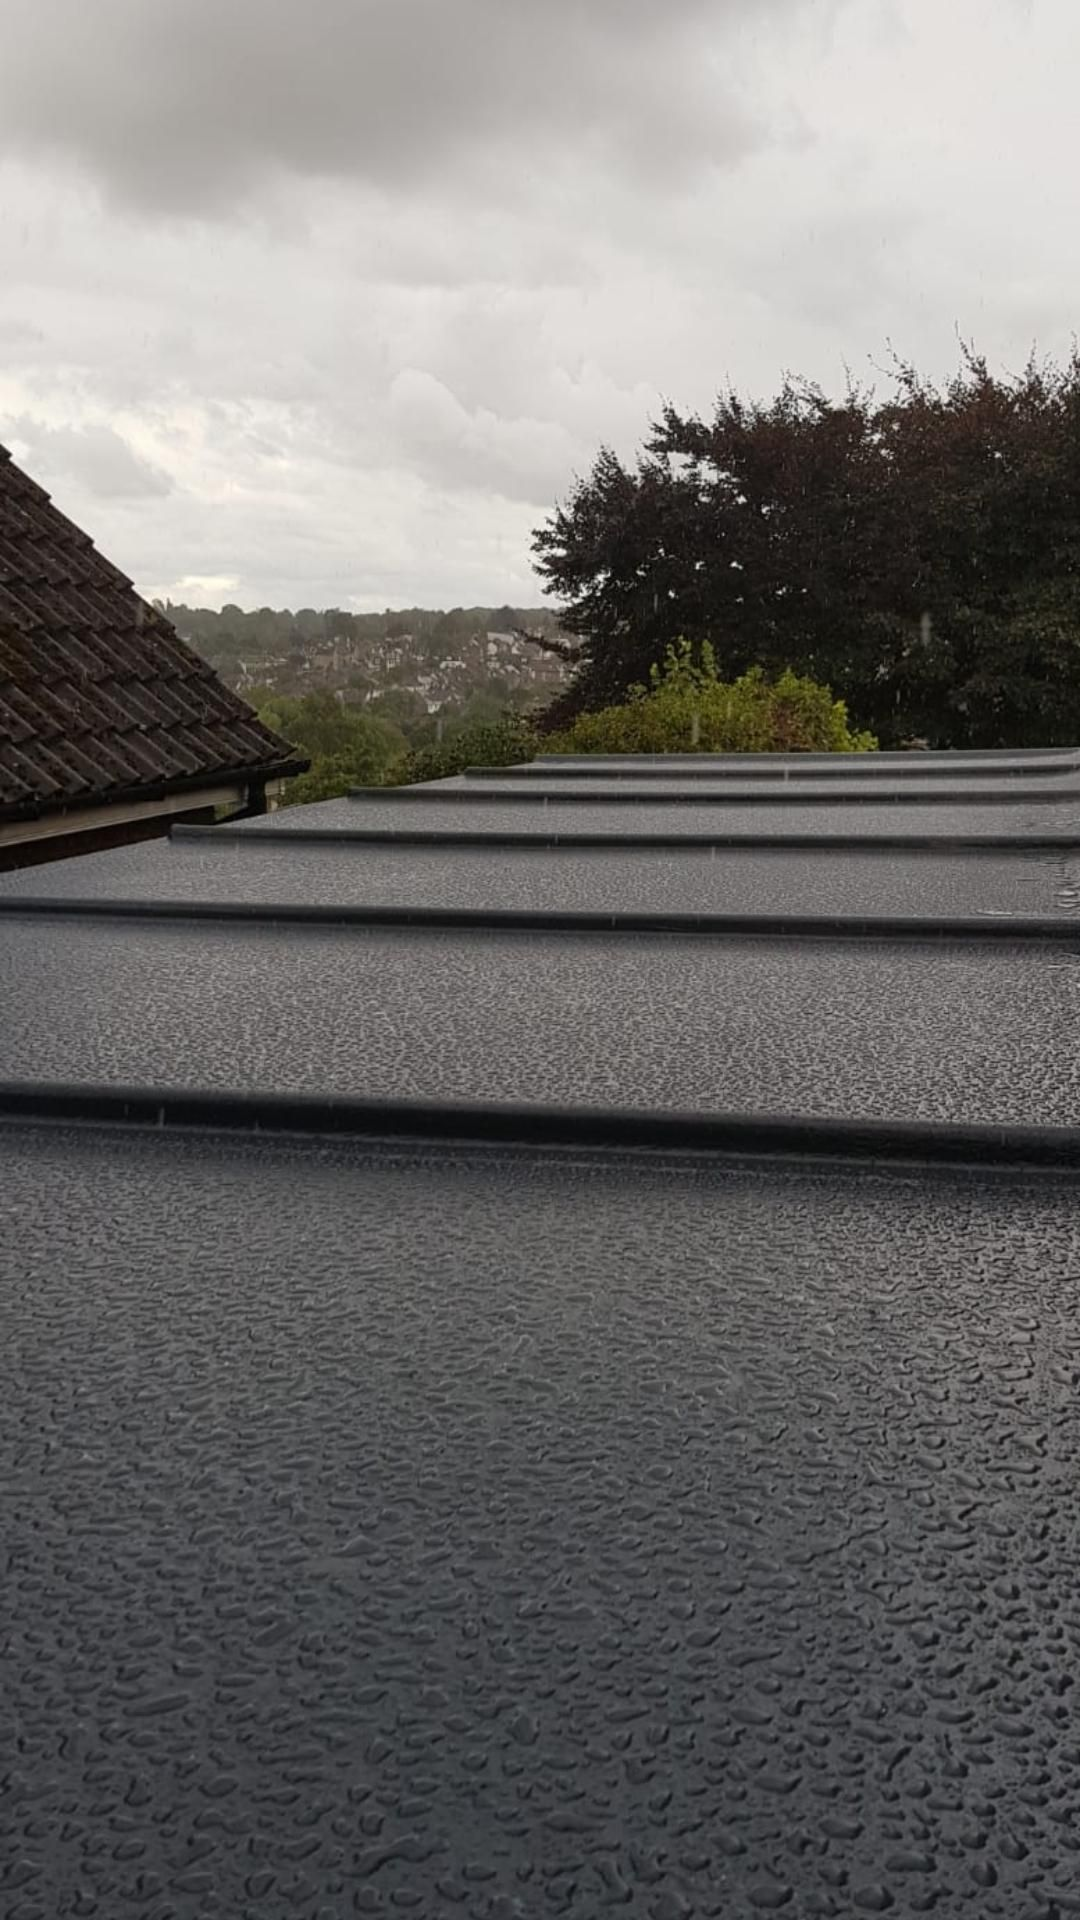 R J Evans Flat Roofing Limited Posted On Linkedin Flat Roof Flat Roof Covering Roof Covering